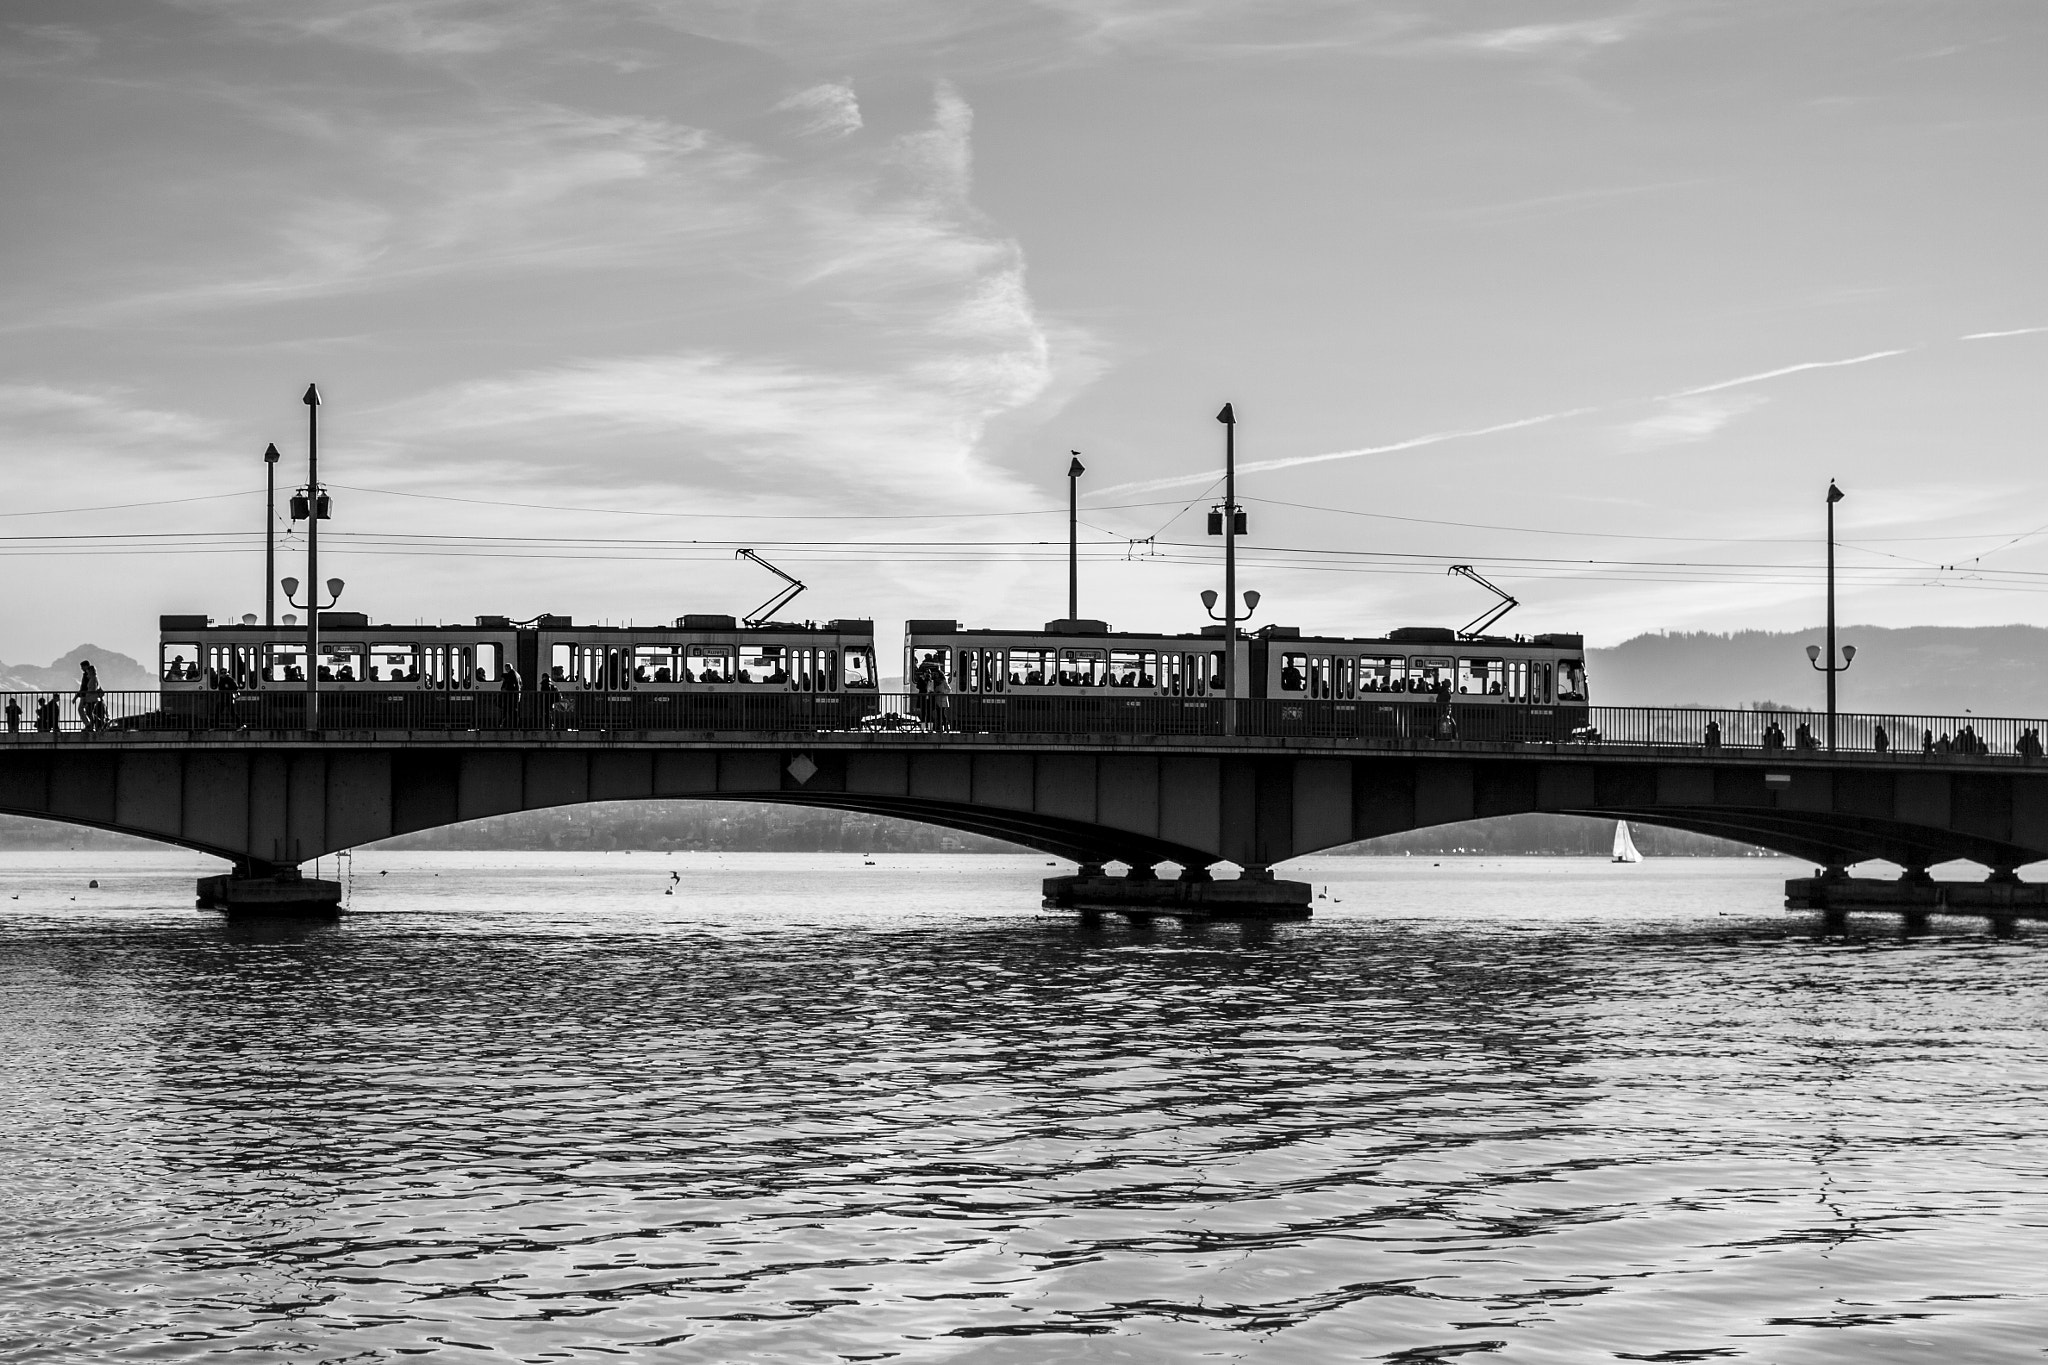 Photograph The Tram by Andy Gehrig on 500px